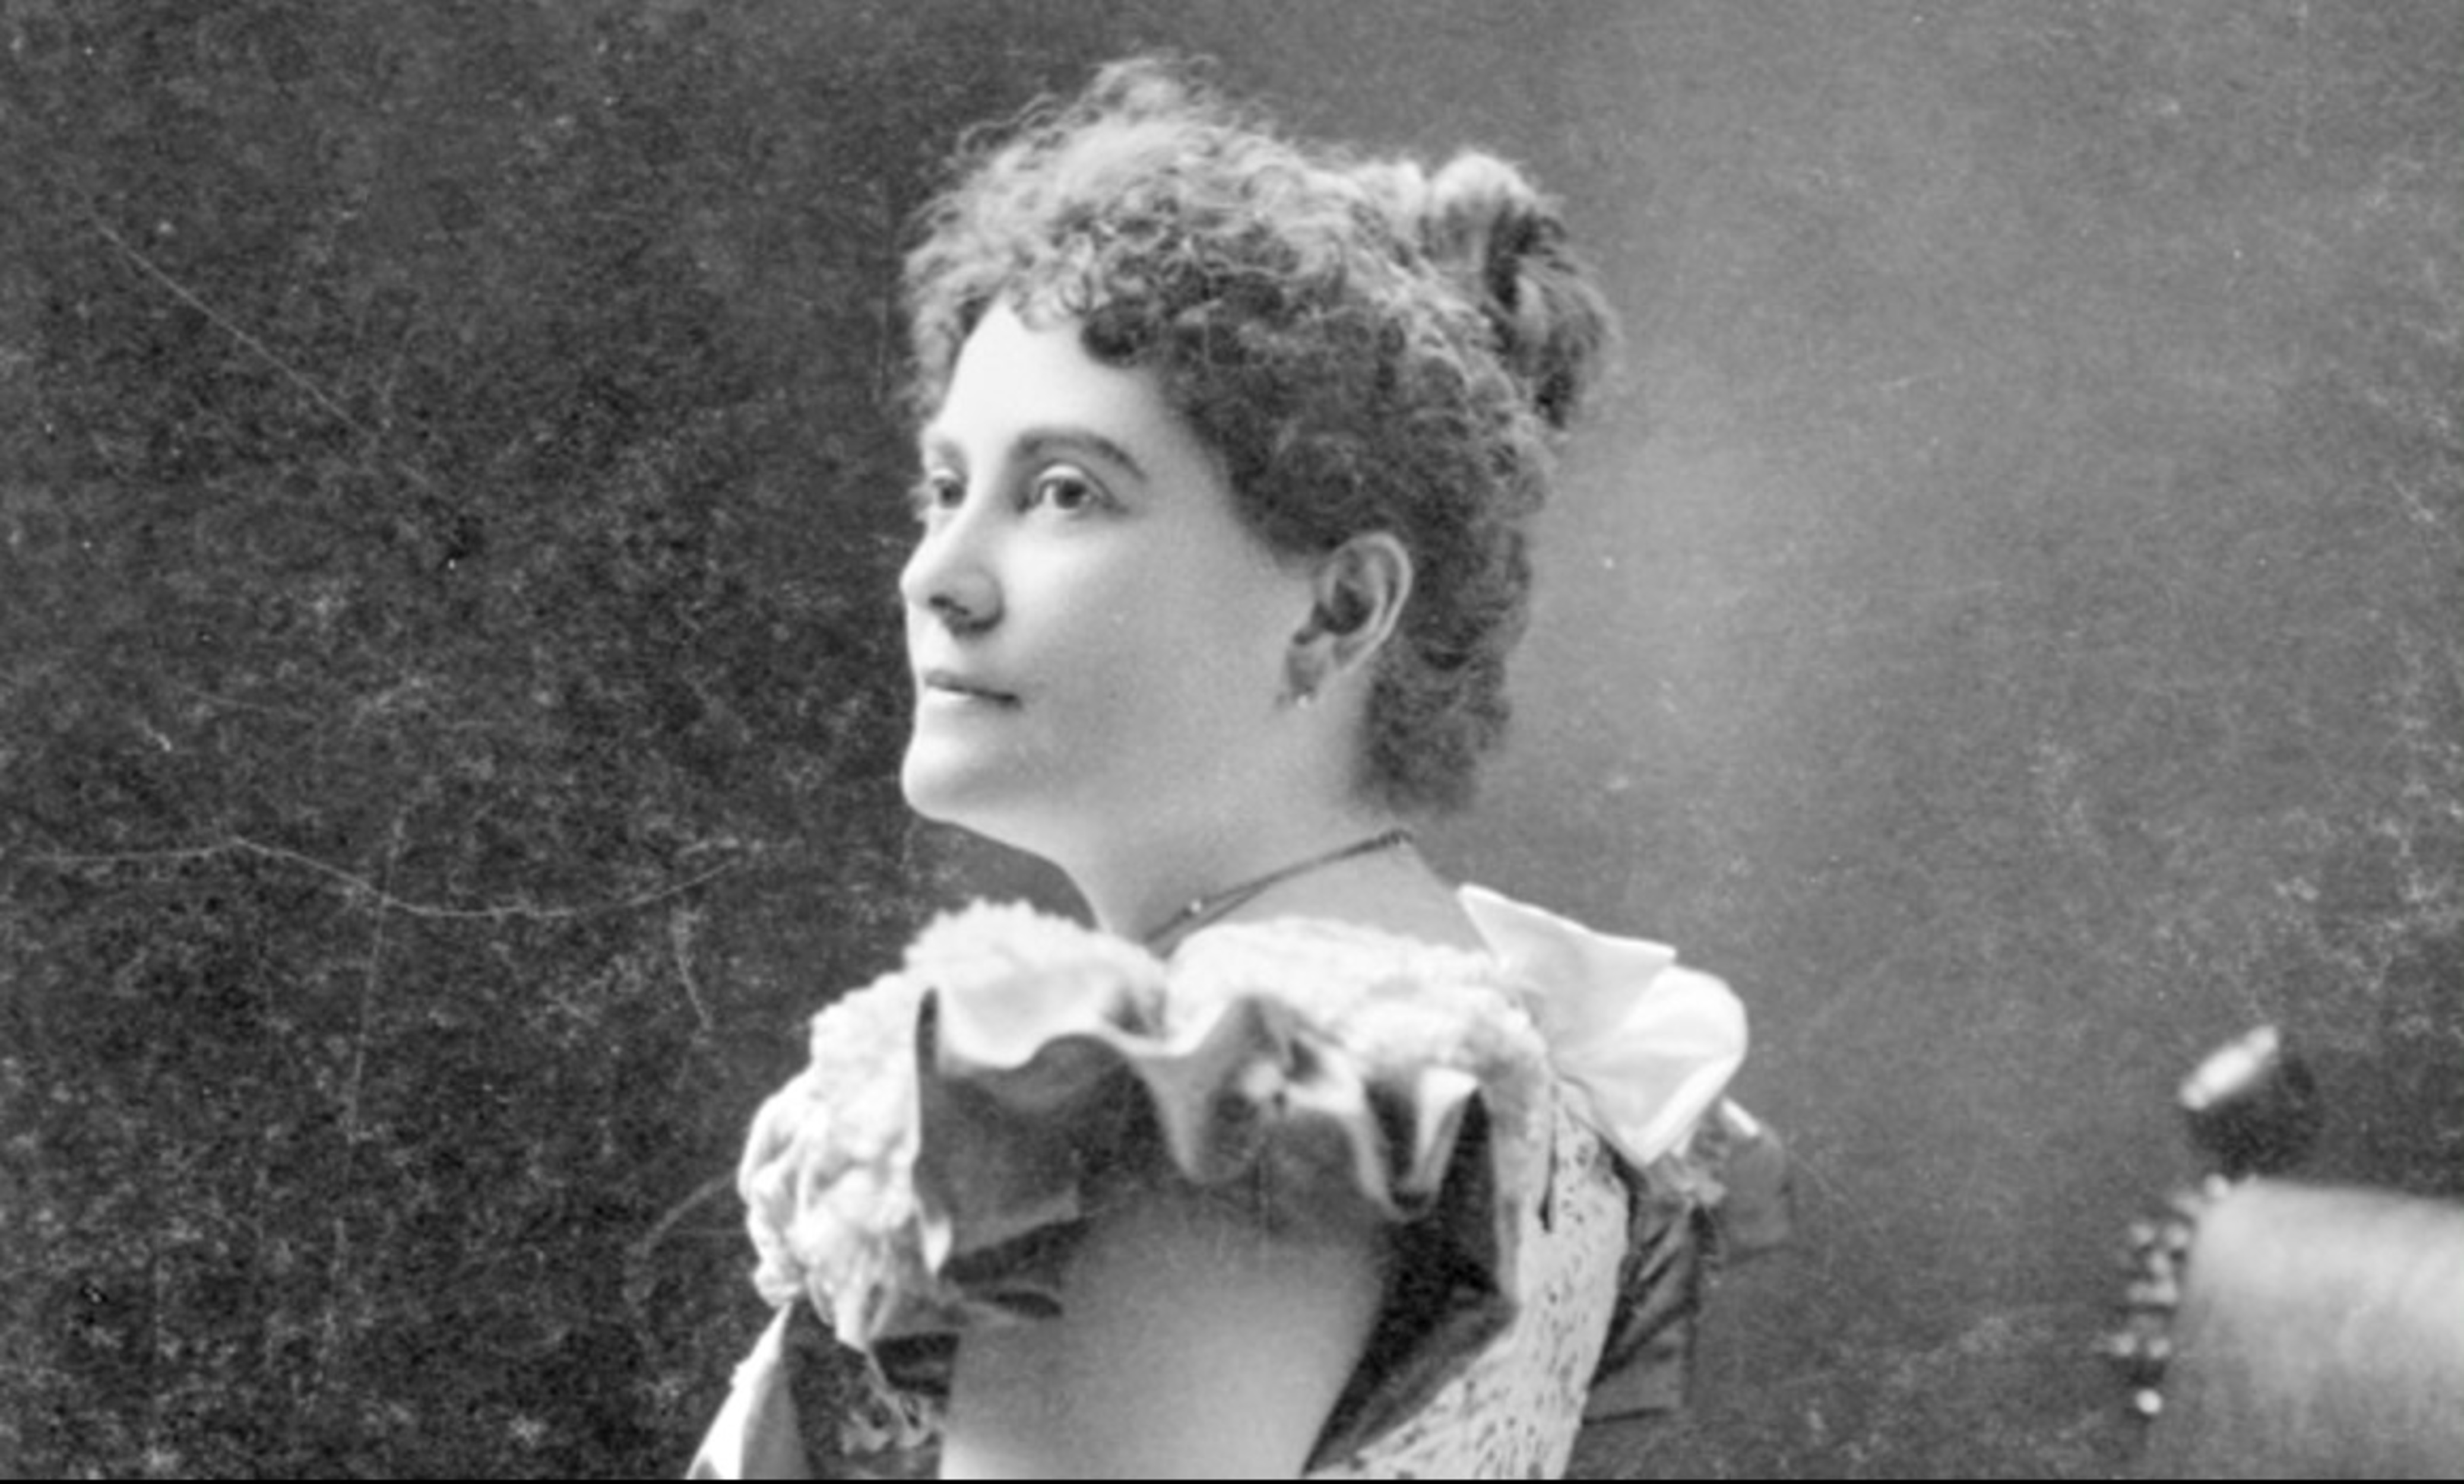 emily stowe and the womens suffrage movement of canada She also became one of the most influential leaders in the women's rights movement in canada emily jennings was born in norwich, ontario to american quakers who became methodists  2.